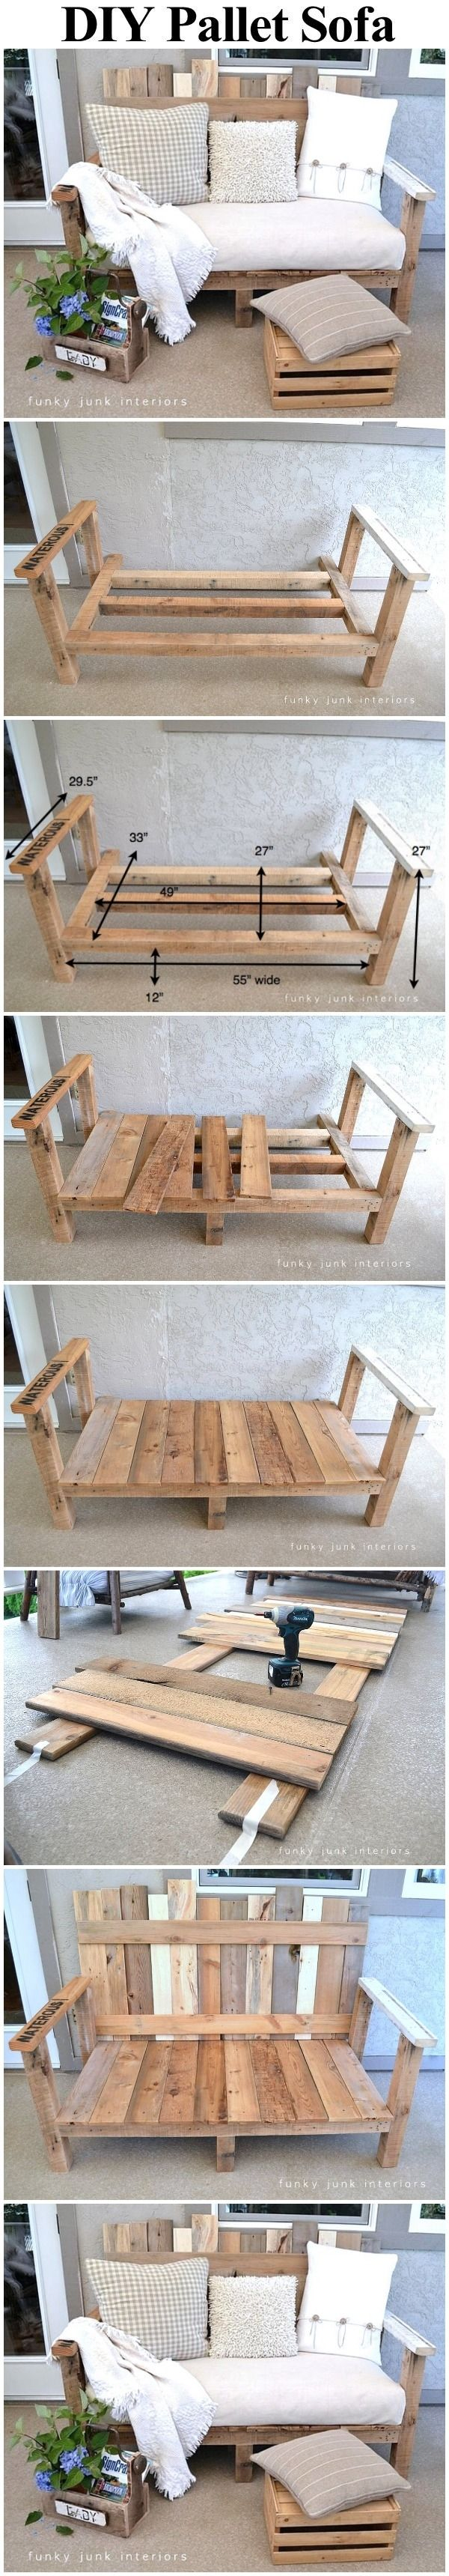 Do It Yourself Einrichtung Pallet Wood Outdoor Sofa Pictures, Photos, And Images For